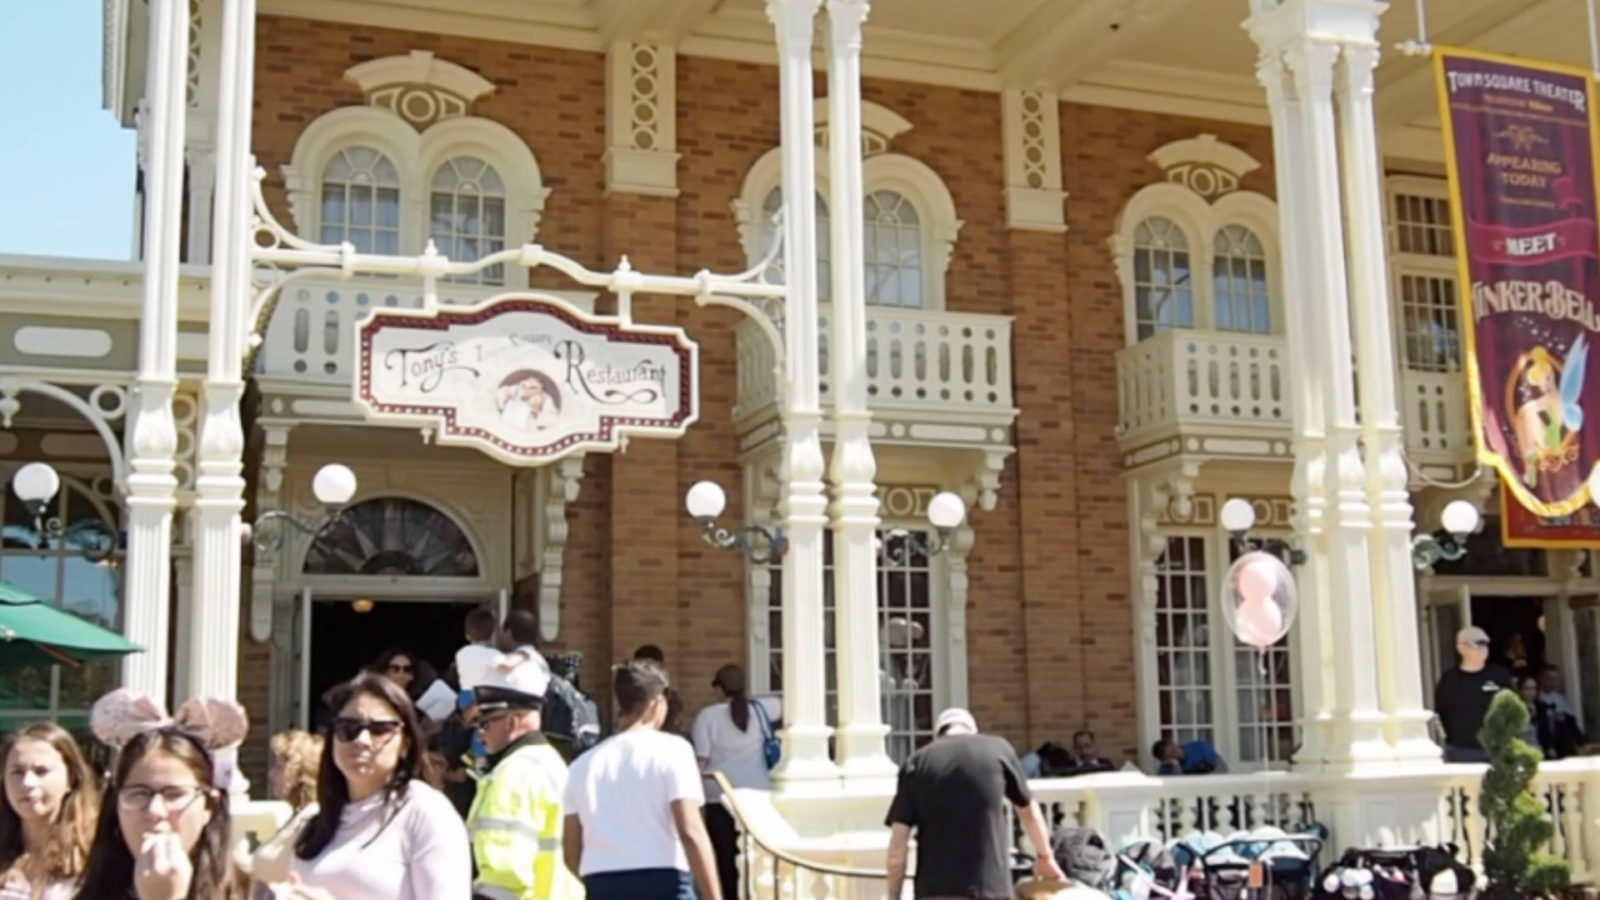 WDW Festival of Fantasy Viewing and Dining Package Review